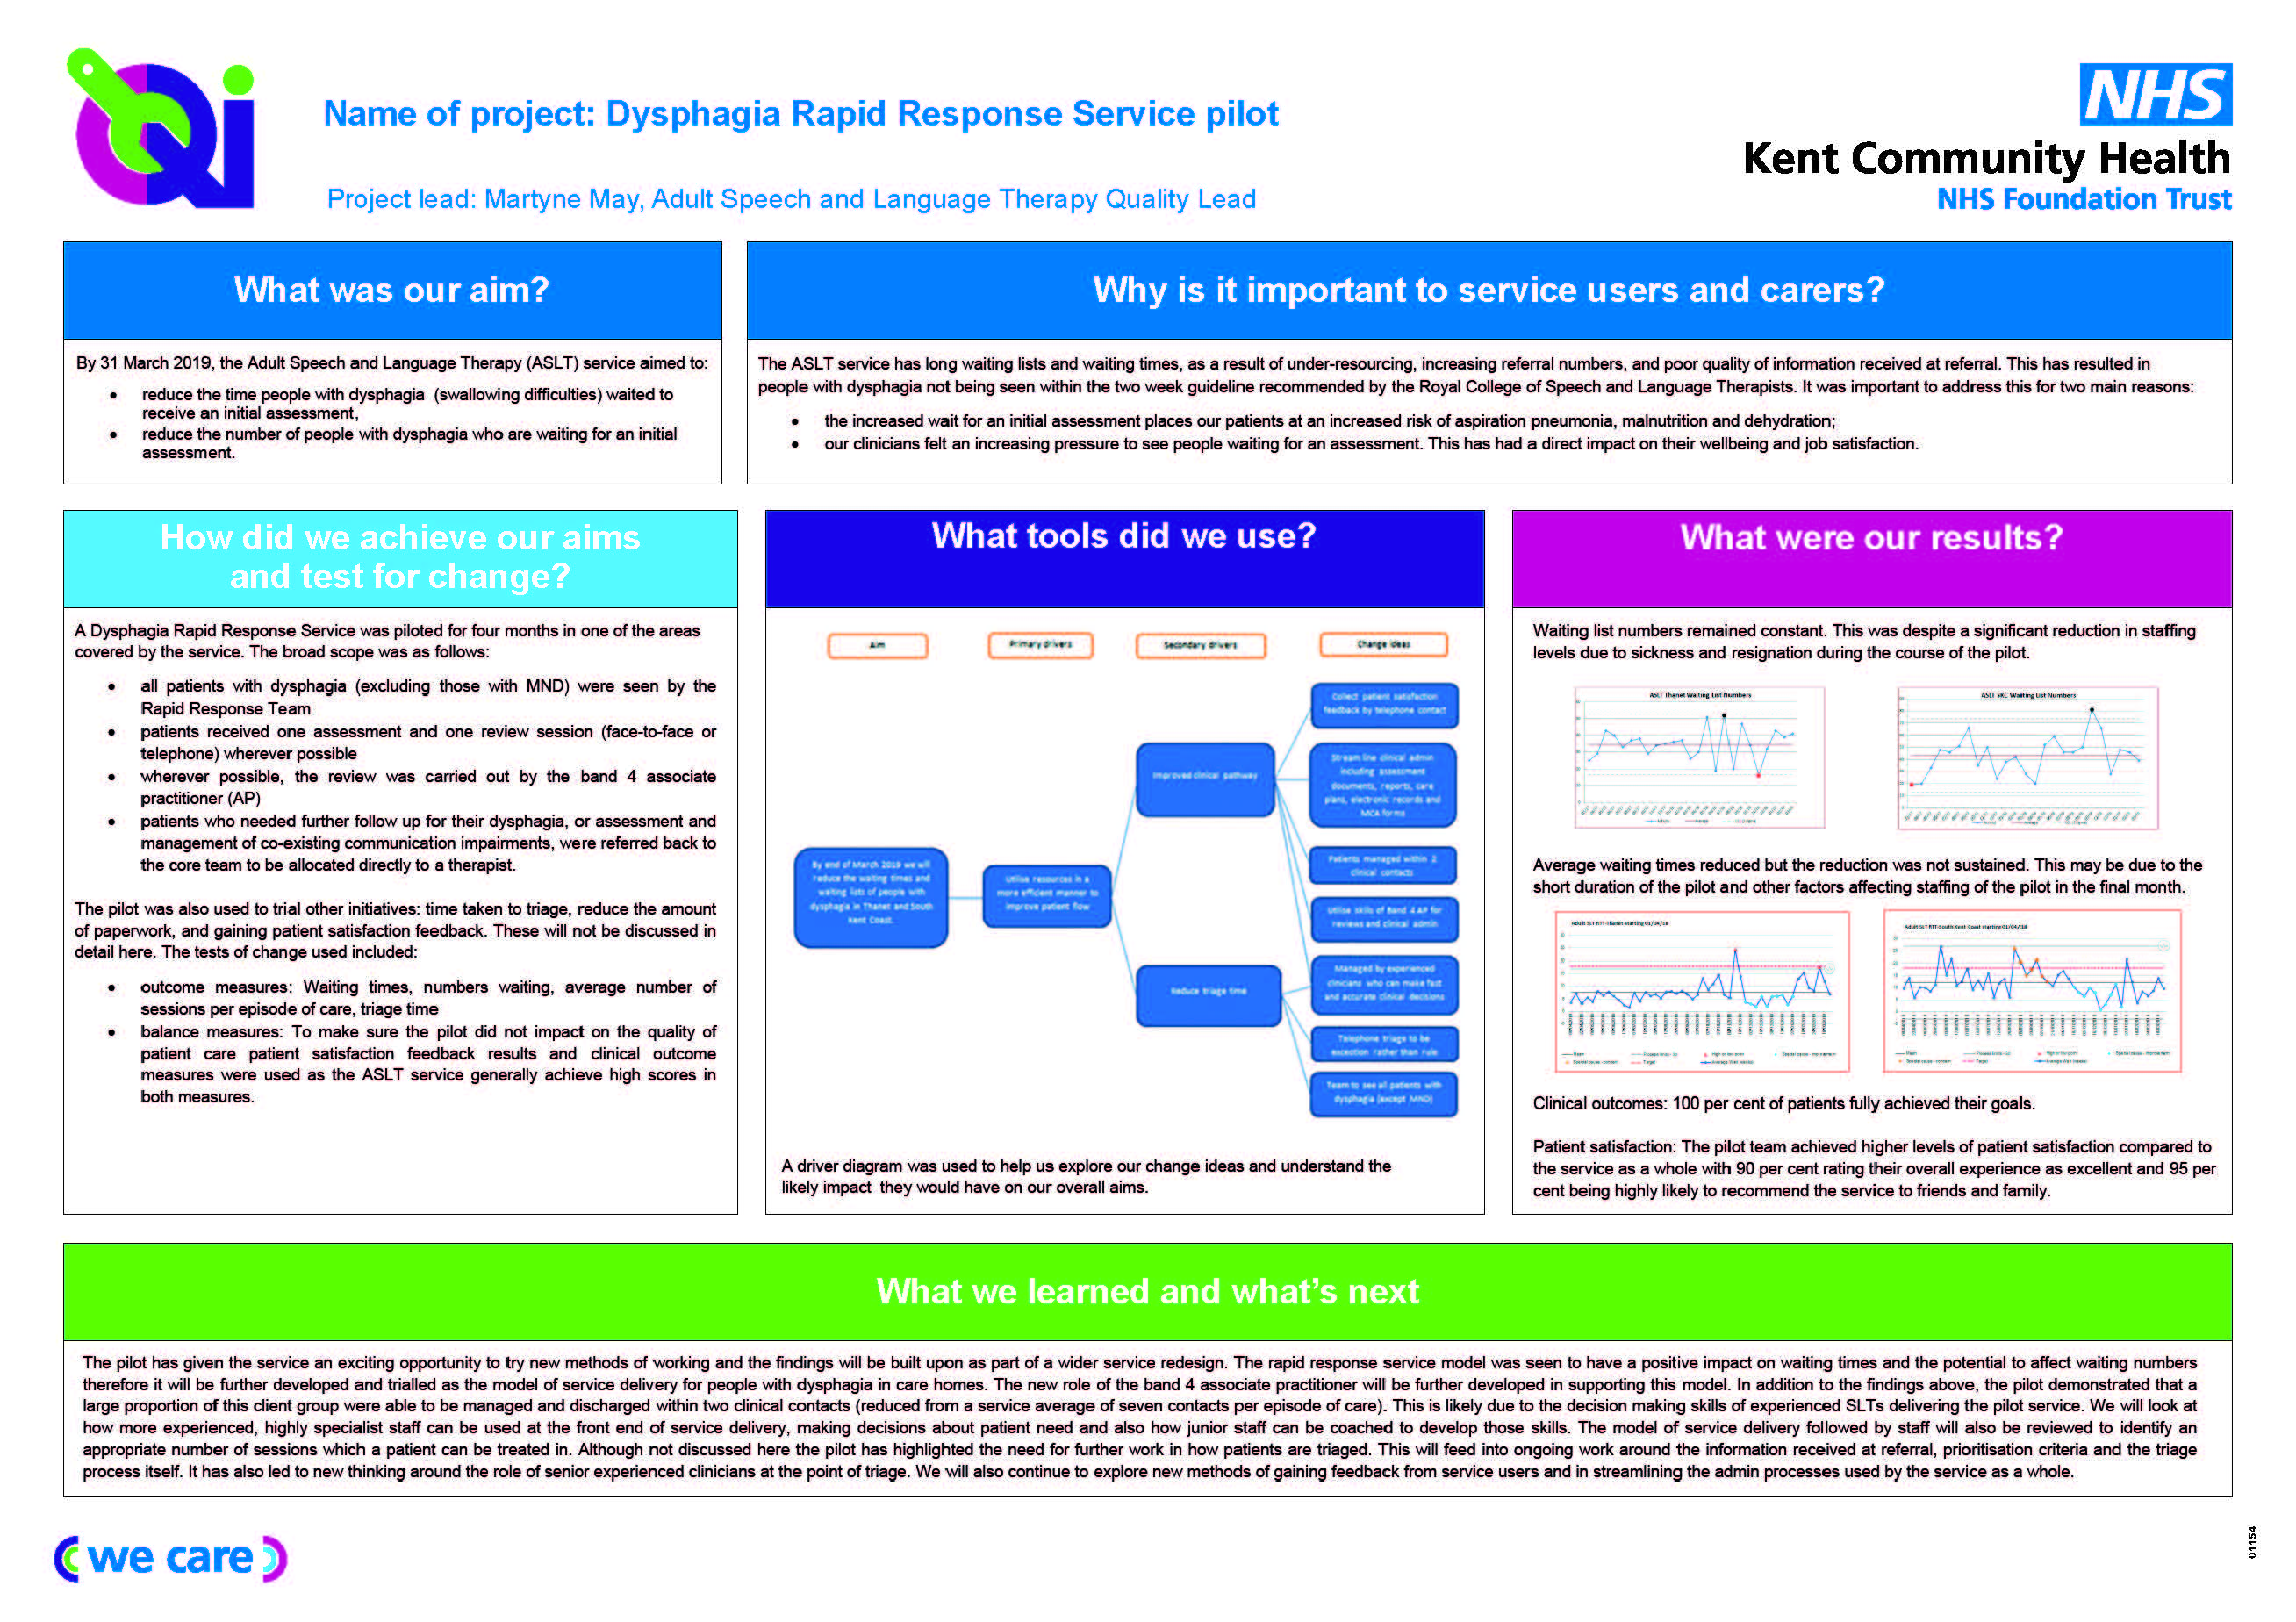 Dysphagia Rapid Response Service pilot project on a page